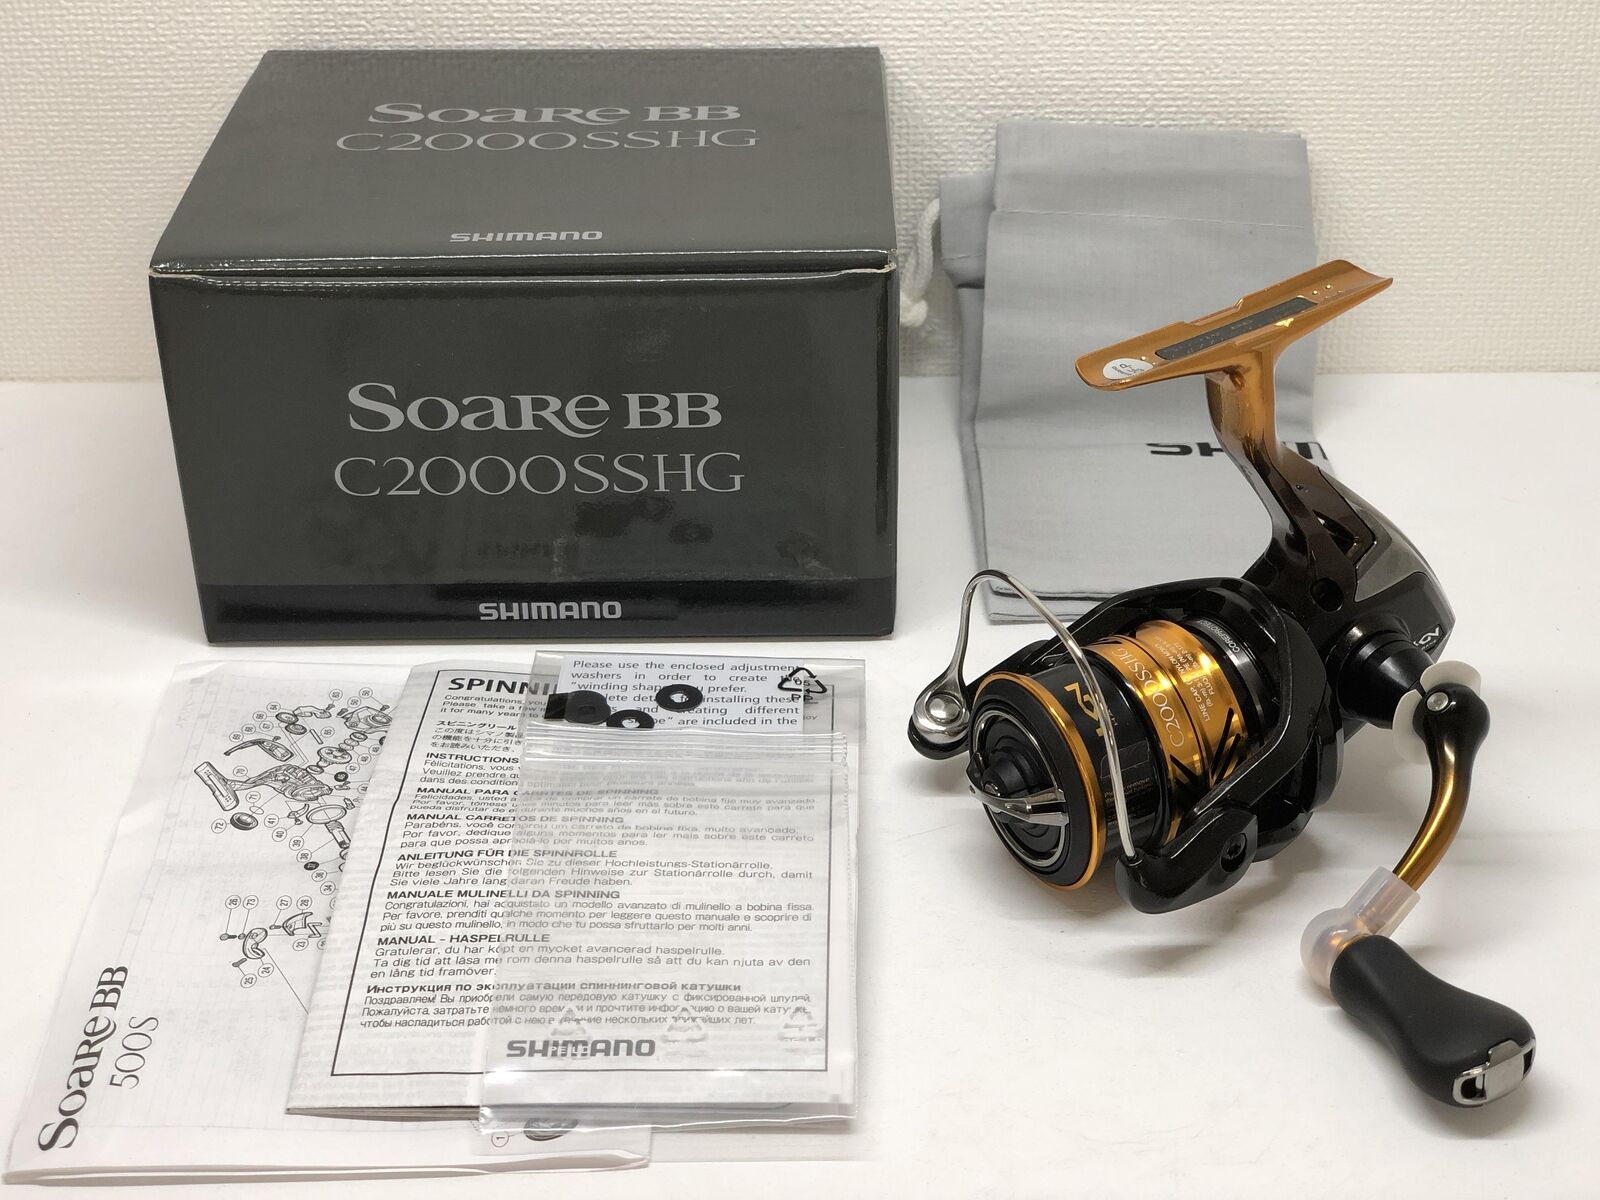 SHIMANO 18  SOARE BB C2000SSHG  - Free Shipping from Japan  save 60% discount